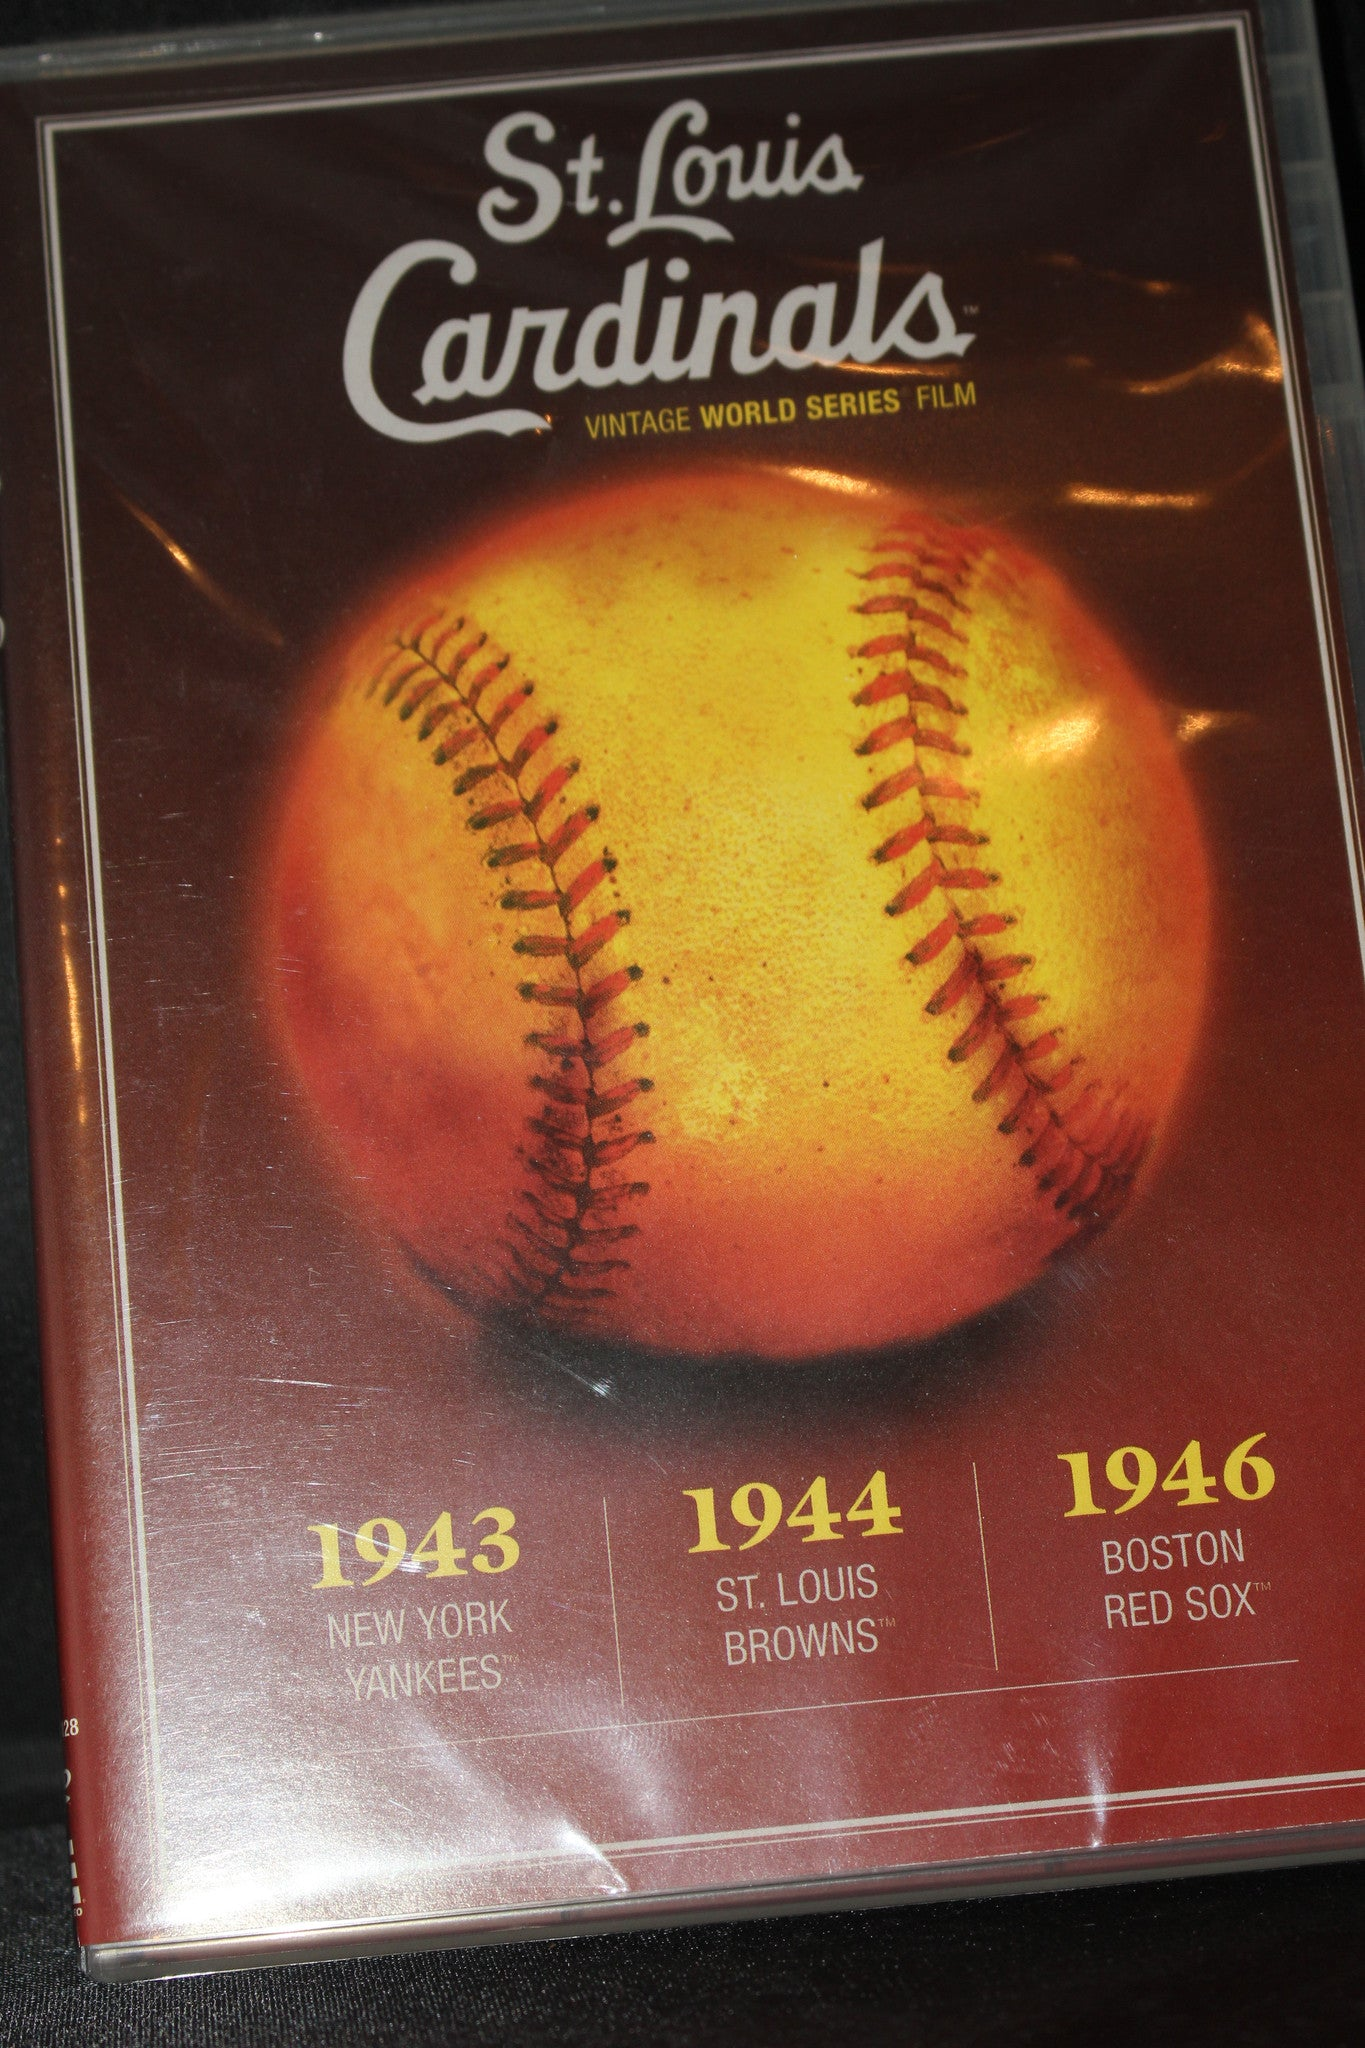 St. Louis Cardinals 1943, 1944 & 1946 World Series DVD - Vintage Indy Sports